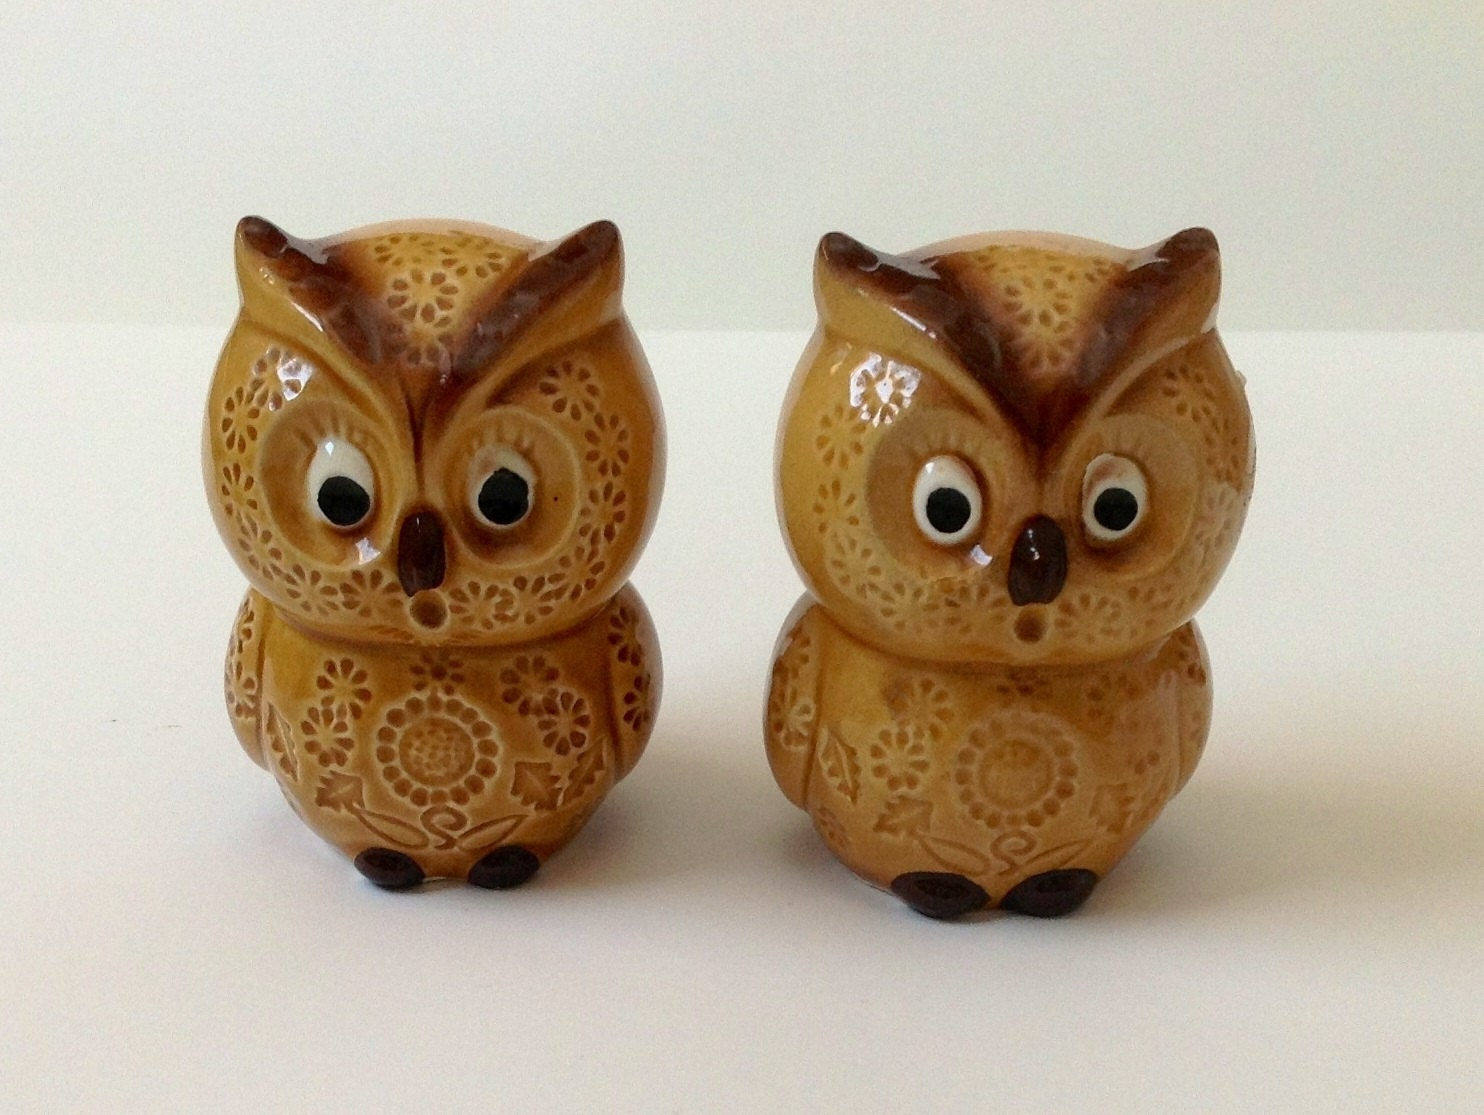 Owl salt and pepper shakers vintage decorative by thegussyowl